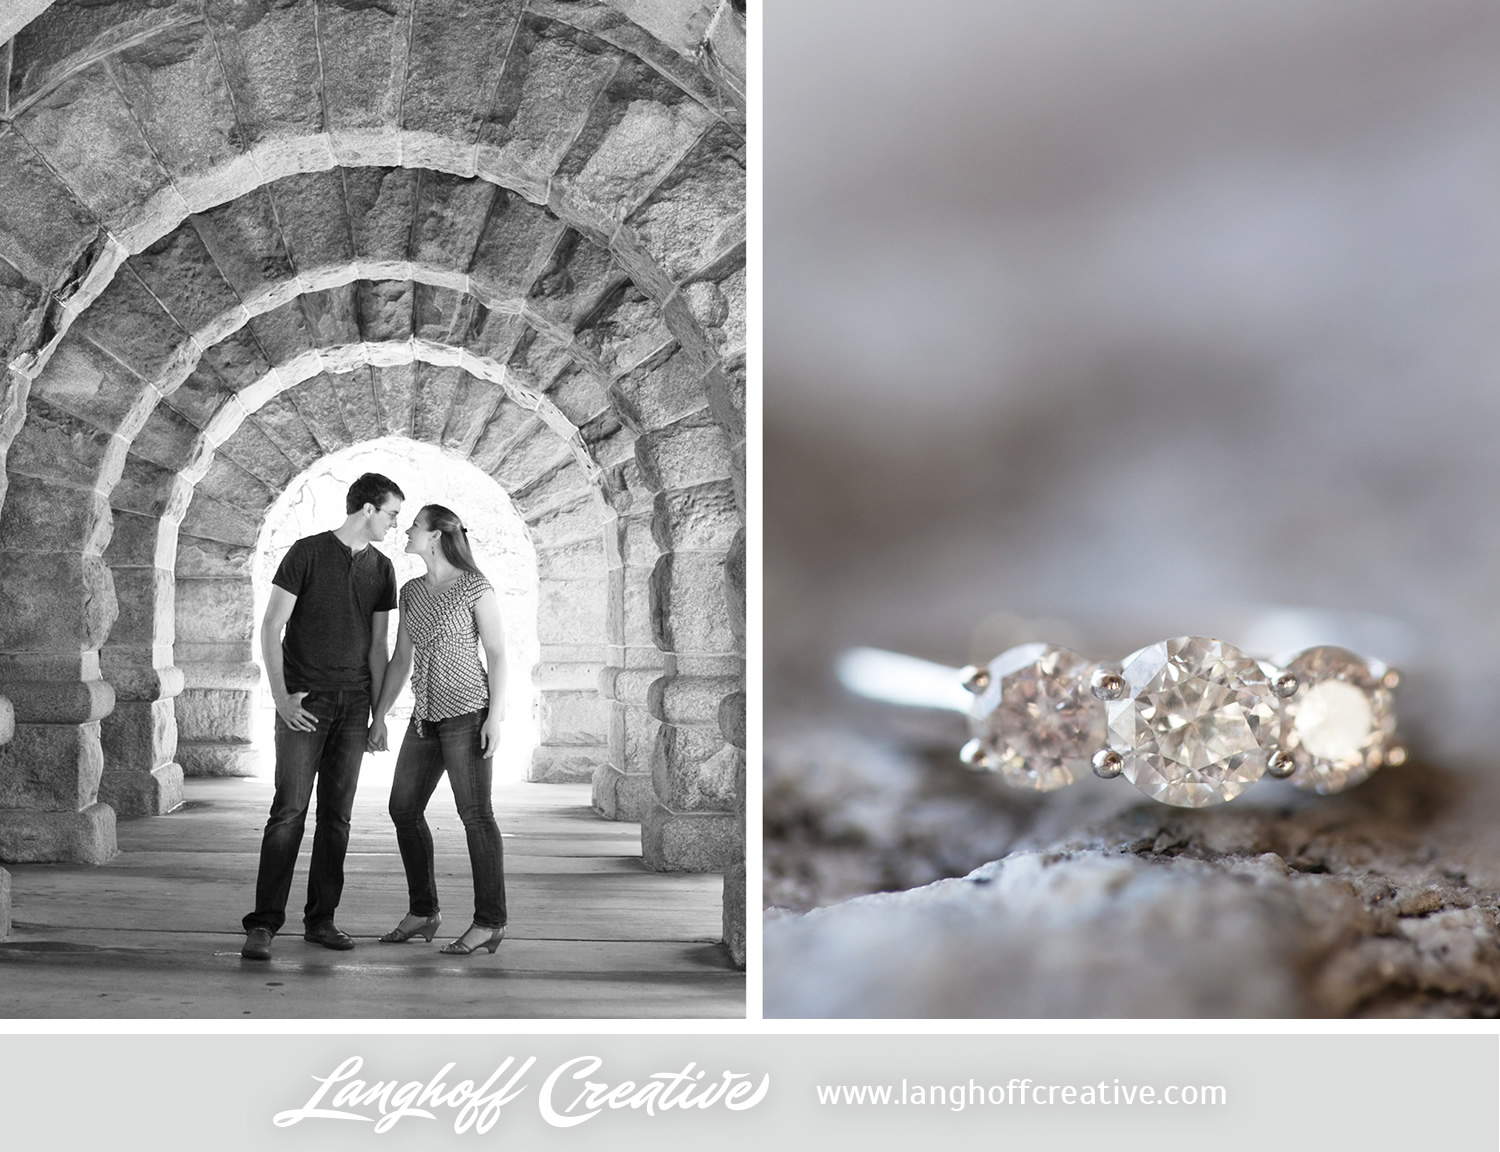 ChicagoEngagement-LincolnParkZoo-Engaged-LanghoffCreative-DestinationWeddingPhotographers-2014-ZacRachel-19-photo.jpg